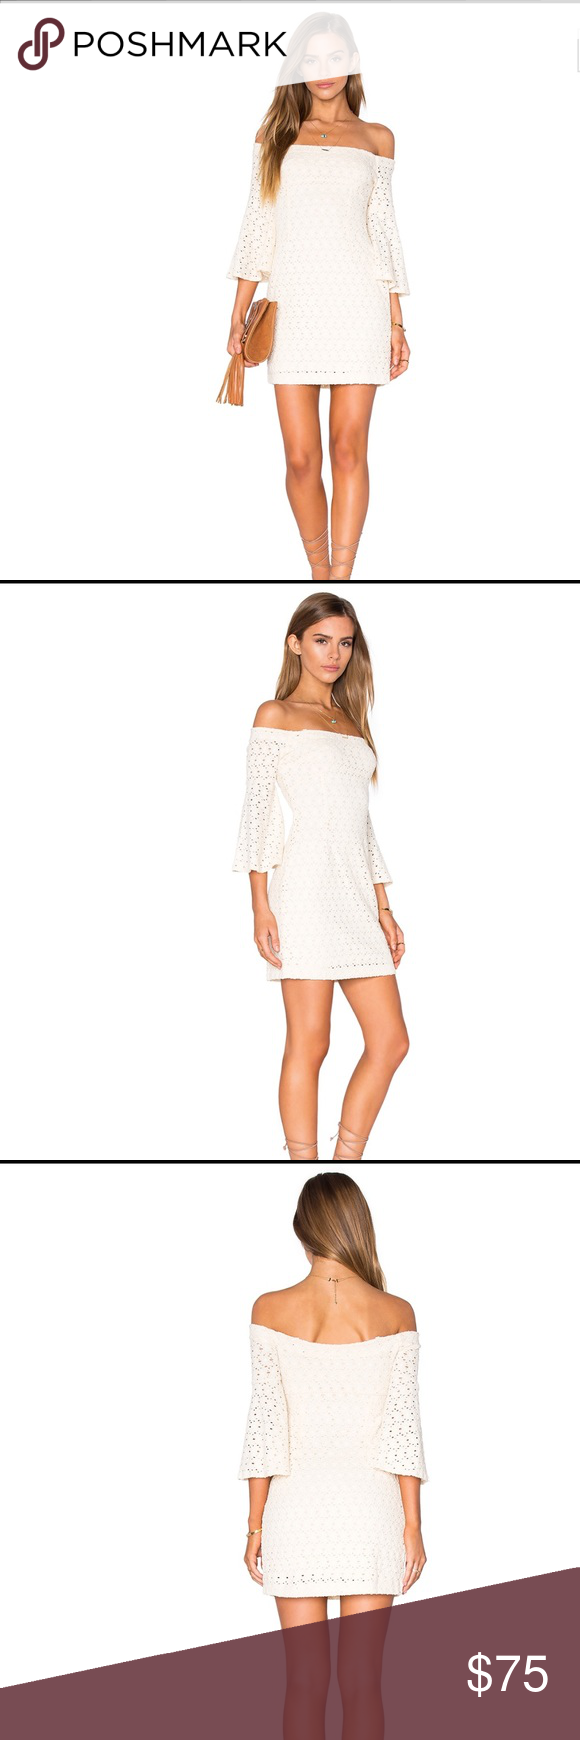 "Free People Ivory Off-the-Shoulder Lace Dress XS Free People Lace Off The Shoulder ""Sophia"" Mini Dress MSRP $148, Brand New With Tags • Size: Extra Small • Color: Ivory • Shell: 66% Cotton / 33% Nylon / 1% Spandex • Lining: 100% Polyester • Fully lined • Hidden side zipper closure  • Shoulder seam to hem approximately 30""  Please message with questions. Free People Dresses Mini"